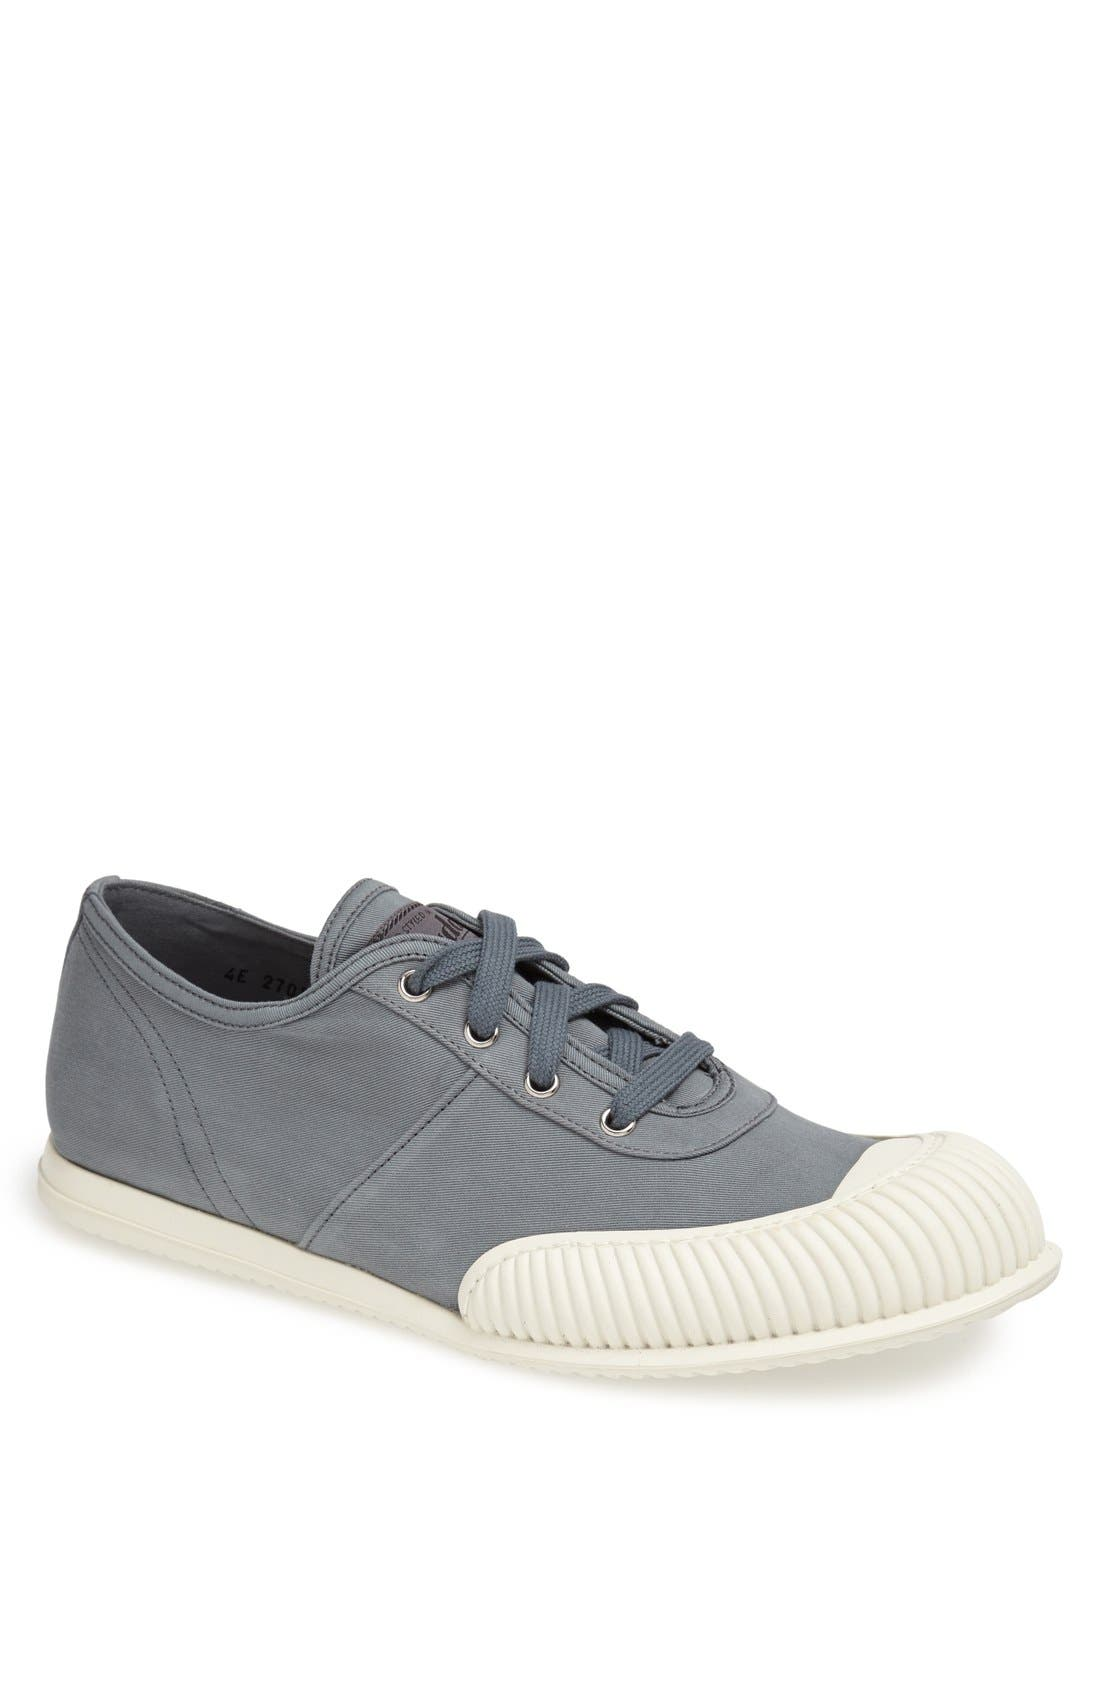 Alternate Image 1 Selected - Prada Gabardine Sneaker